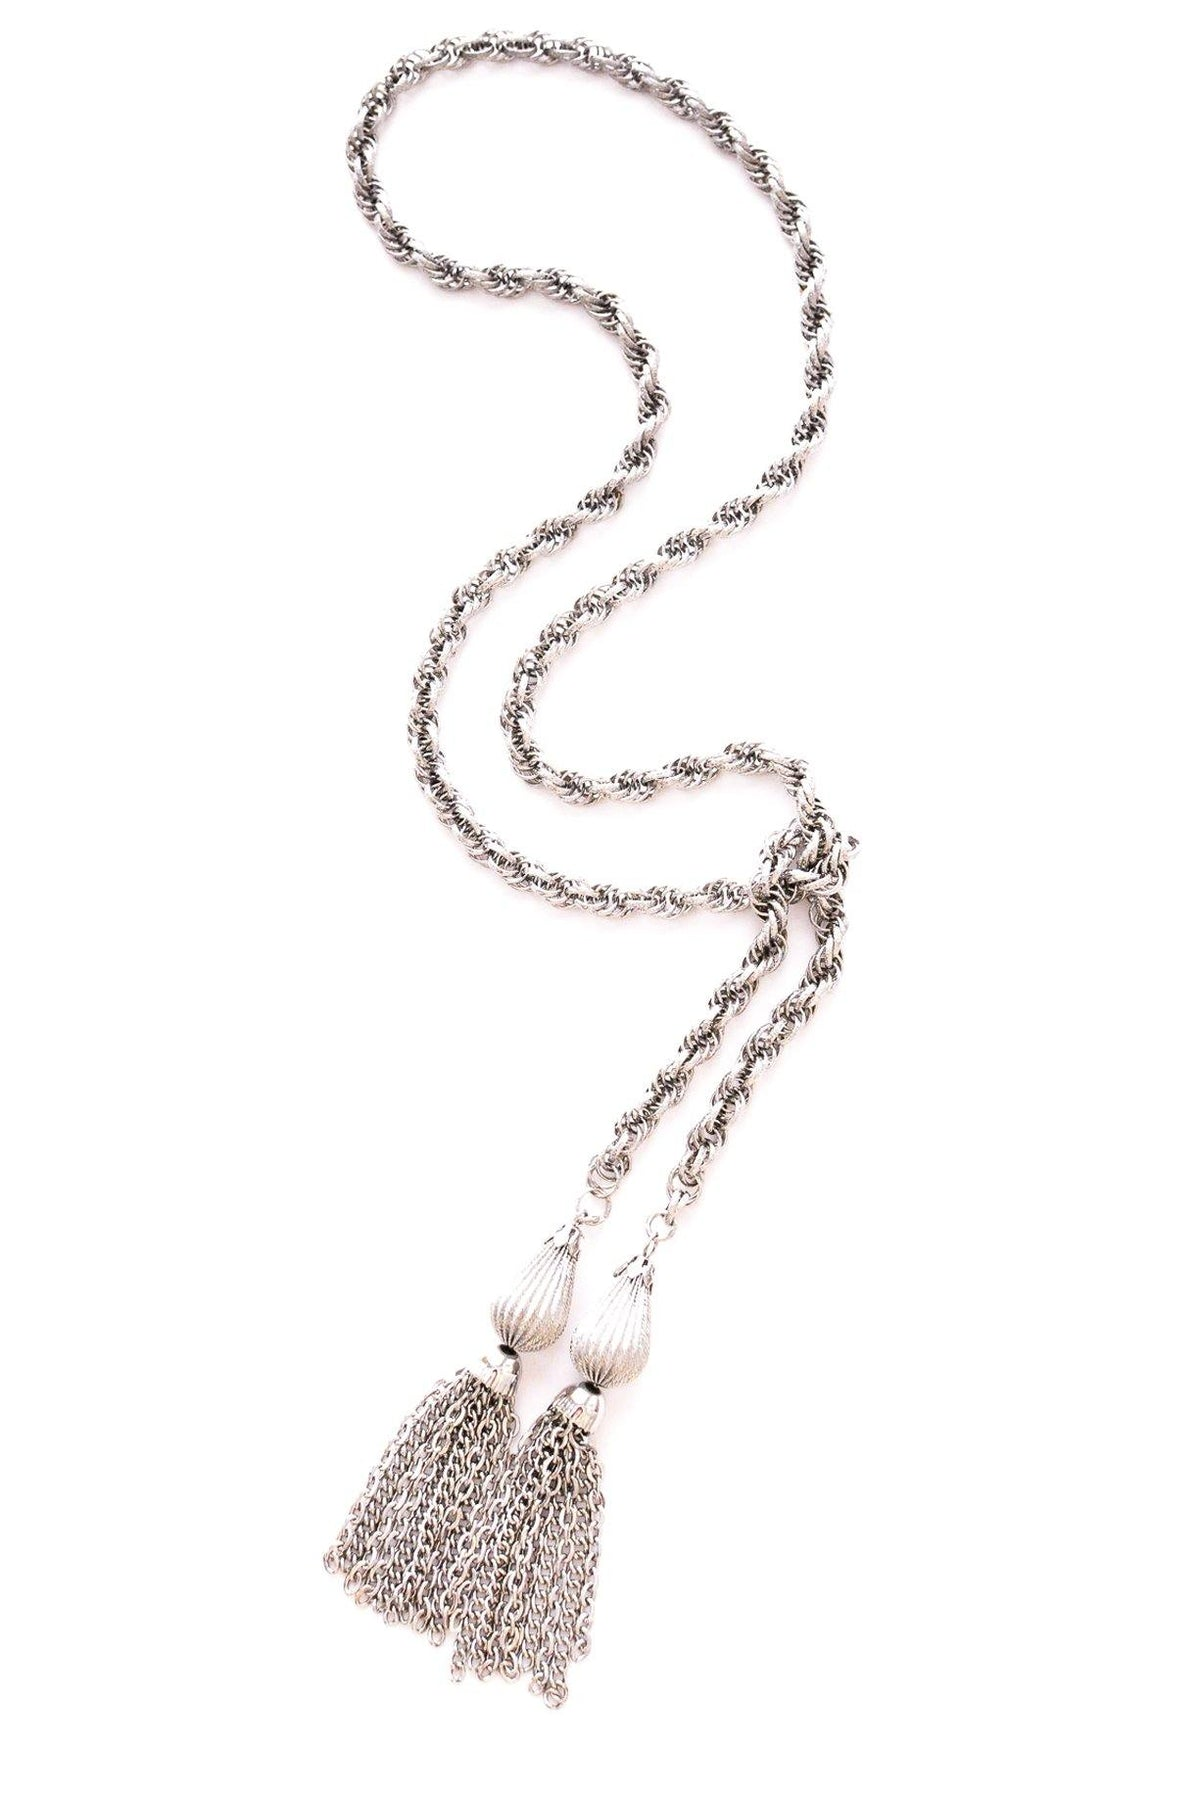 Vintage silver lariat necklace from Sweet & Spark.